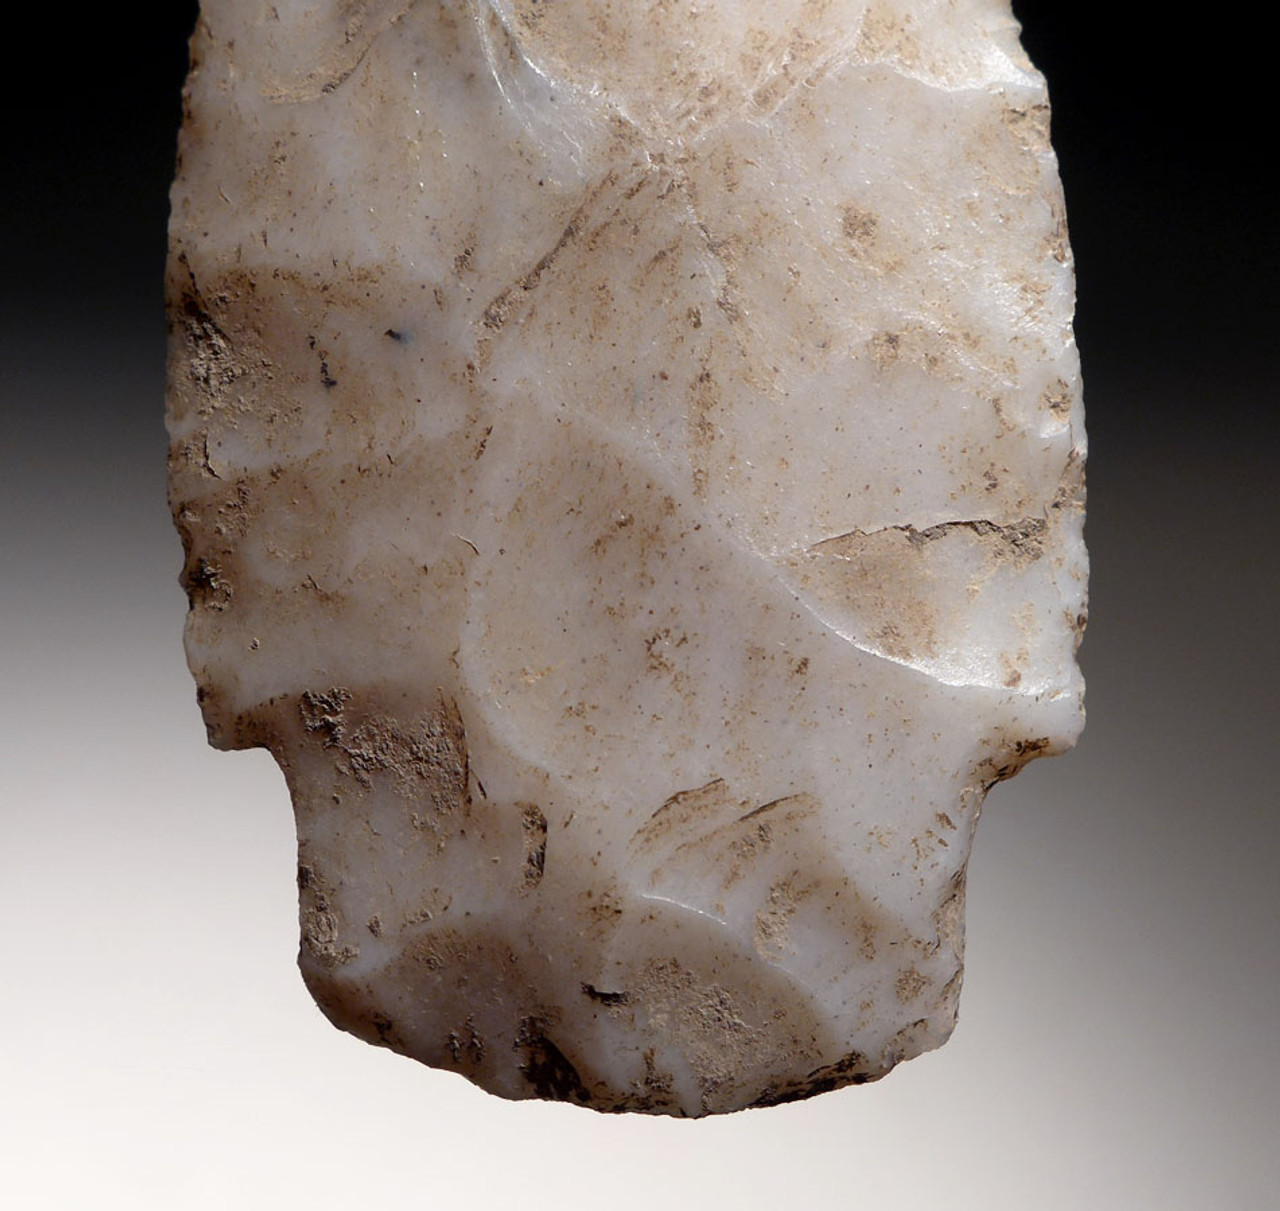 PC248 - SUPERBLY MADE PRE-COLUMBIAN AZTEC LARGE ATLATL SPEARHEAD MADE OF WHITE FLINT